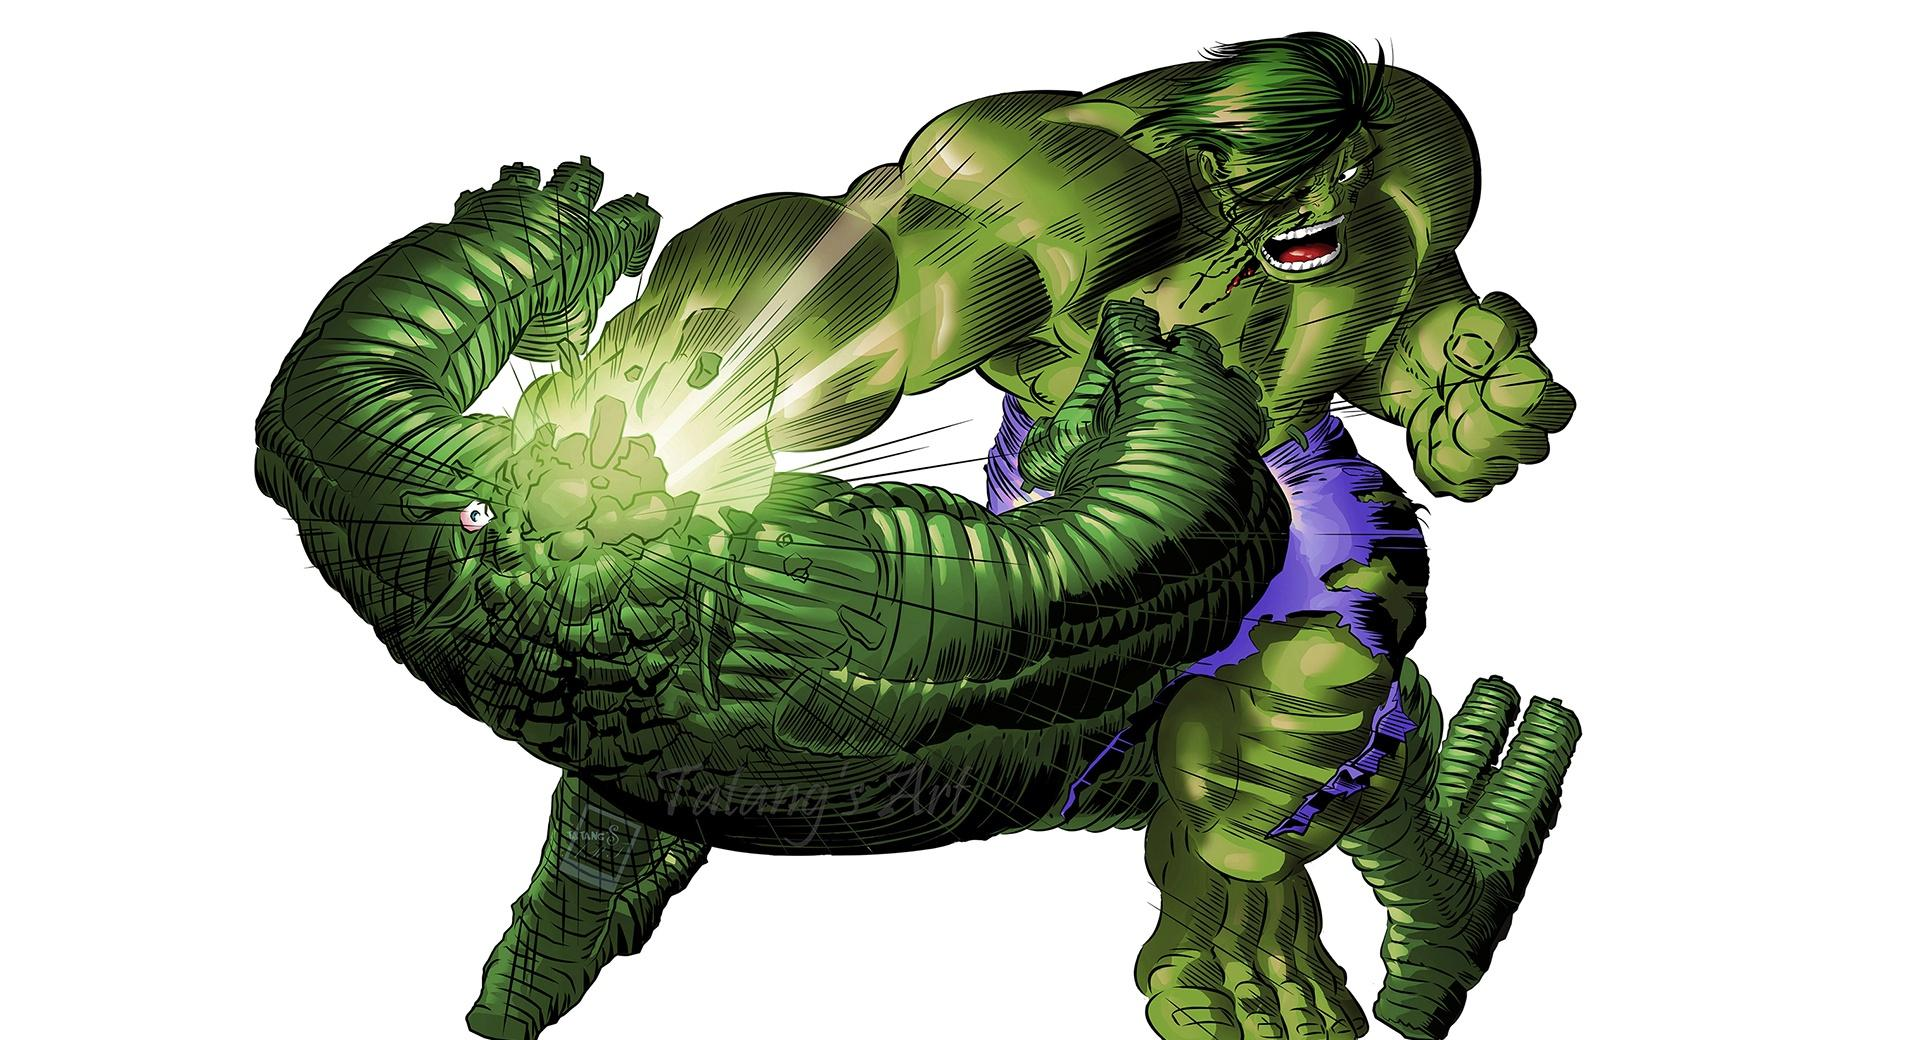 The Hulk by Tame Achi wallpapers HD quality